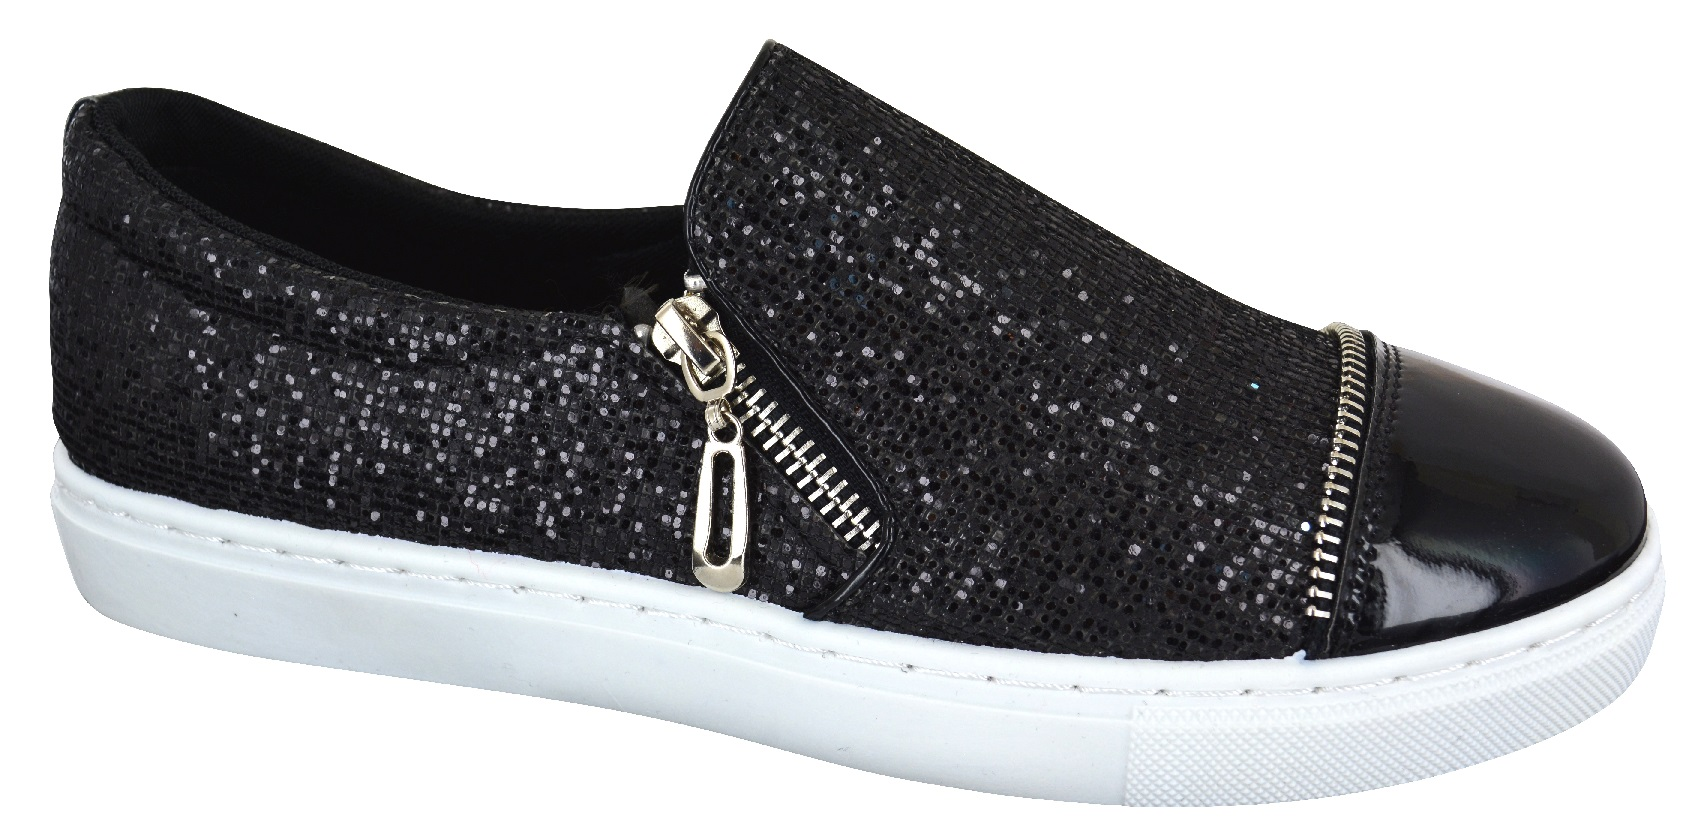 LADIES WOMENS FLAT SPARKLY SLIP ON GLITTER CASUAL PLIMSOLES TRAINERS SHOES SIZE